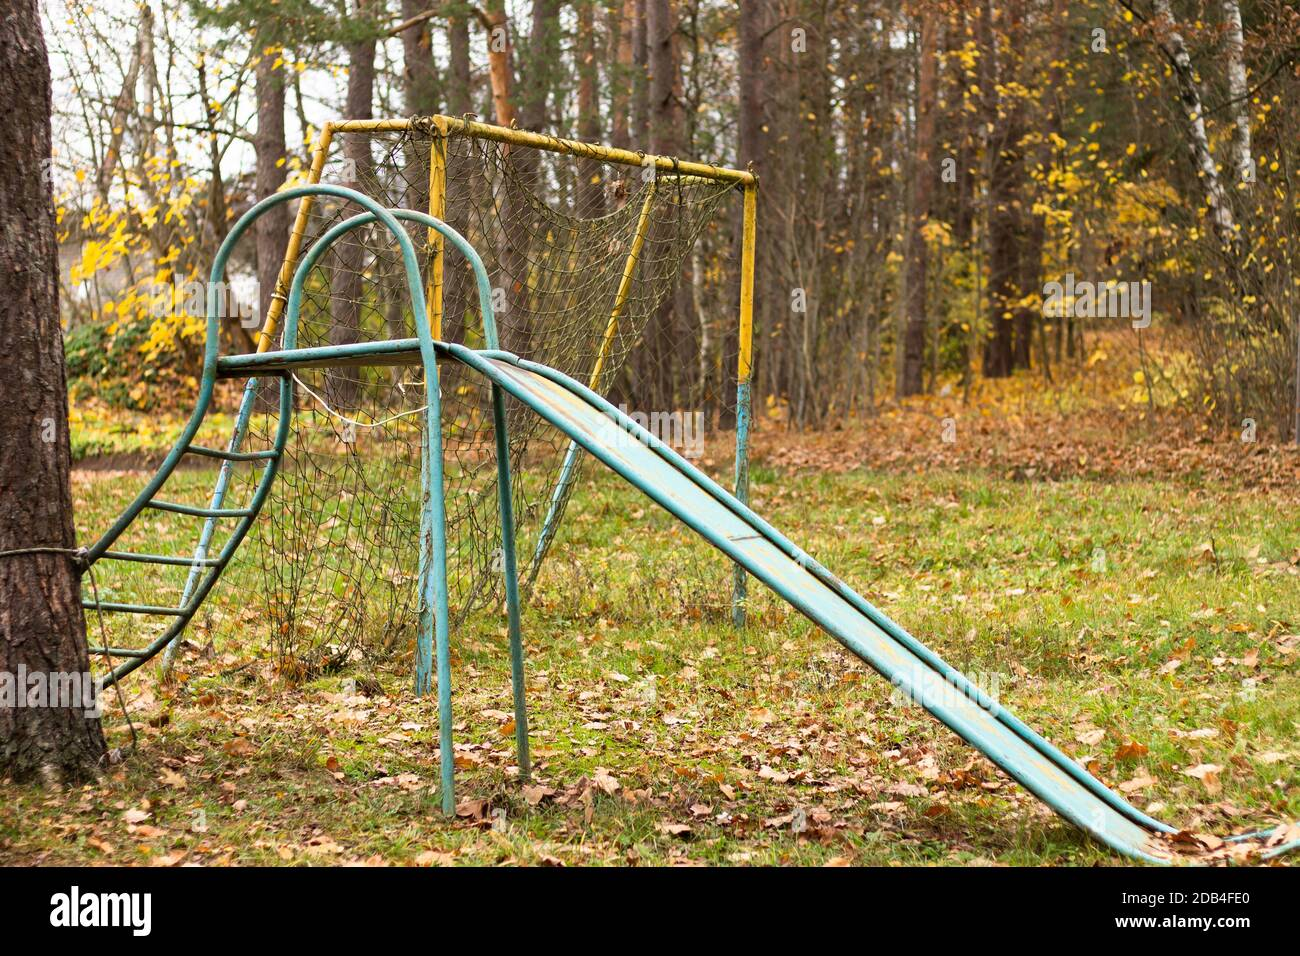 Old Abandoned Playground Slide High Resolution Stock Photography And Images Alamy